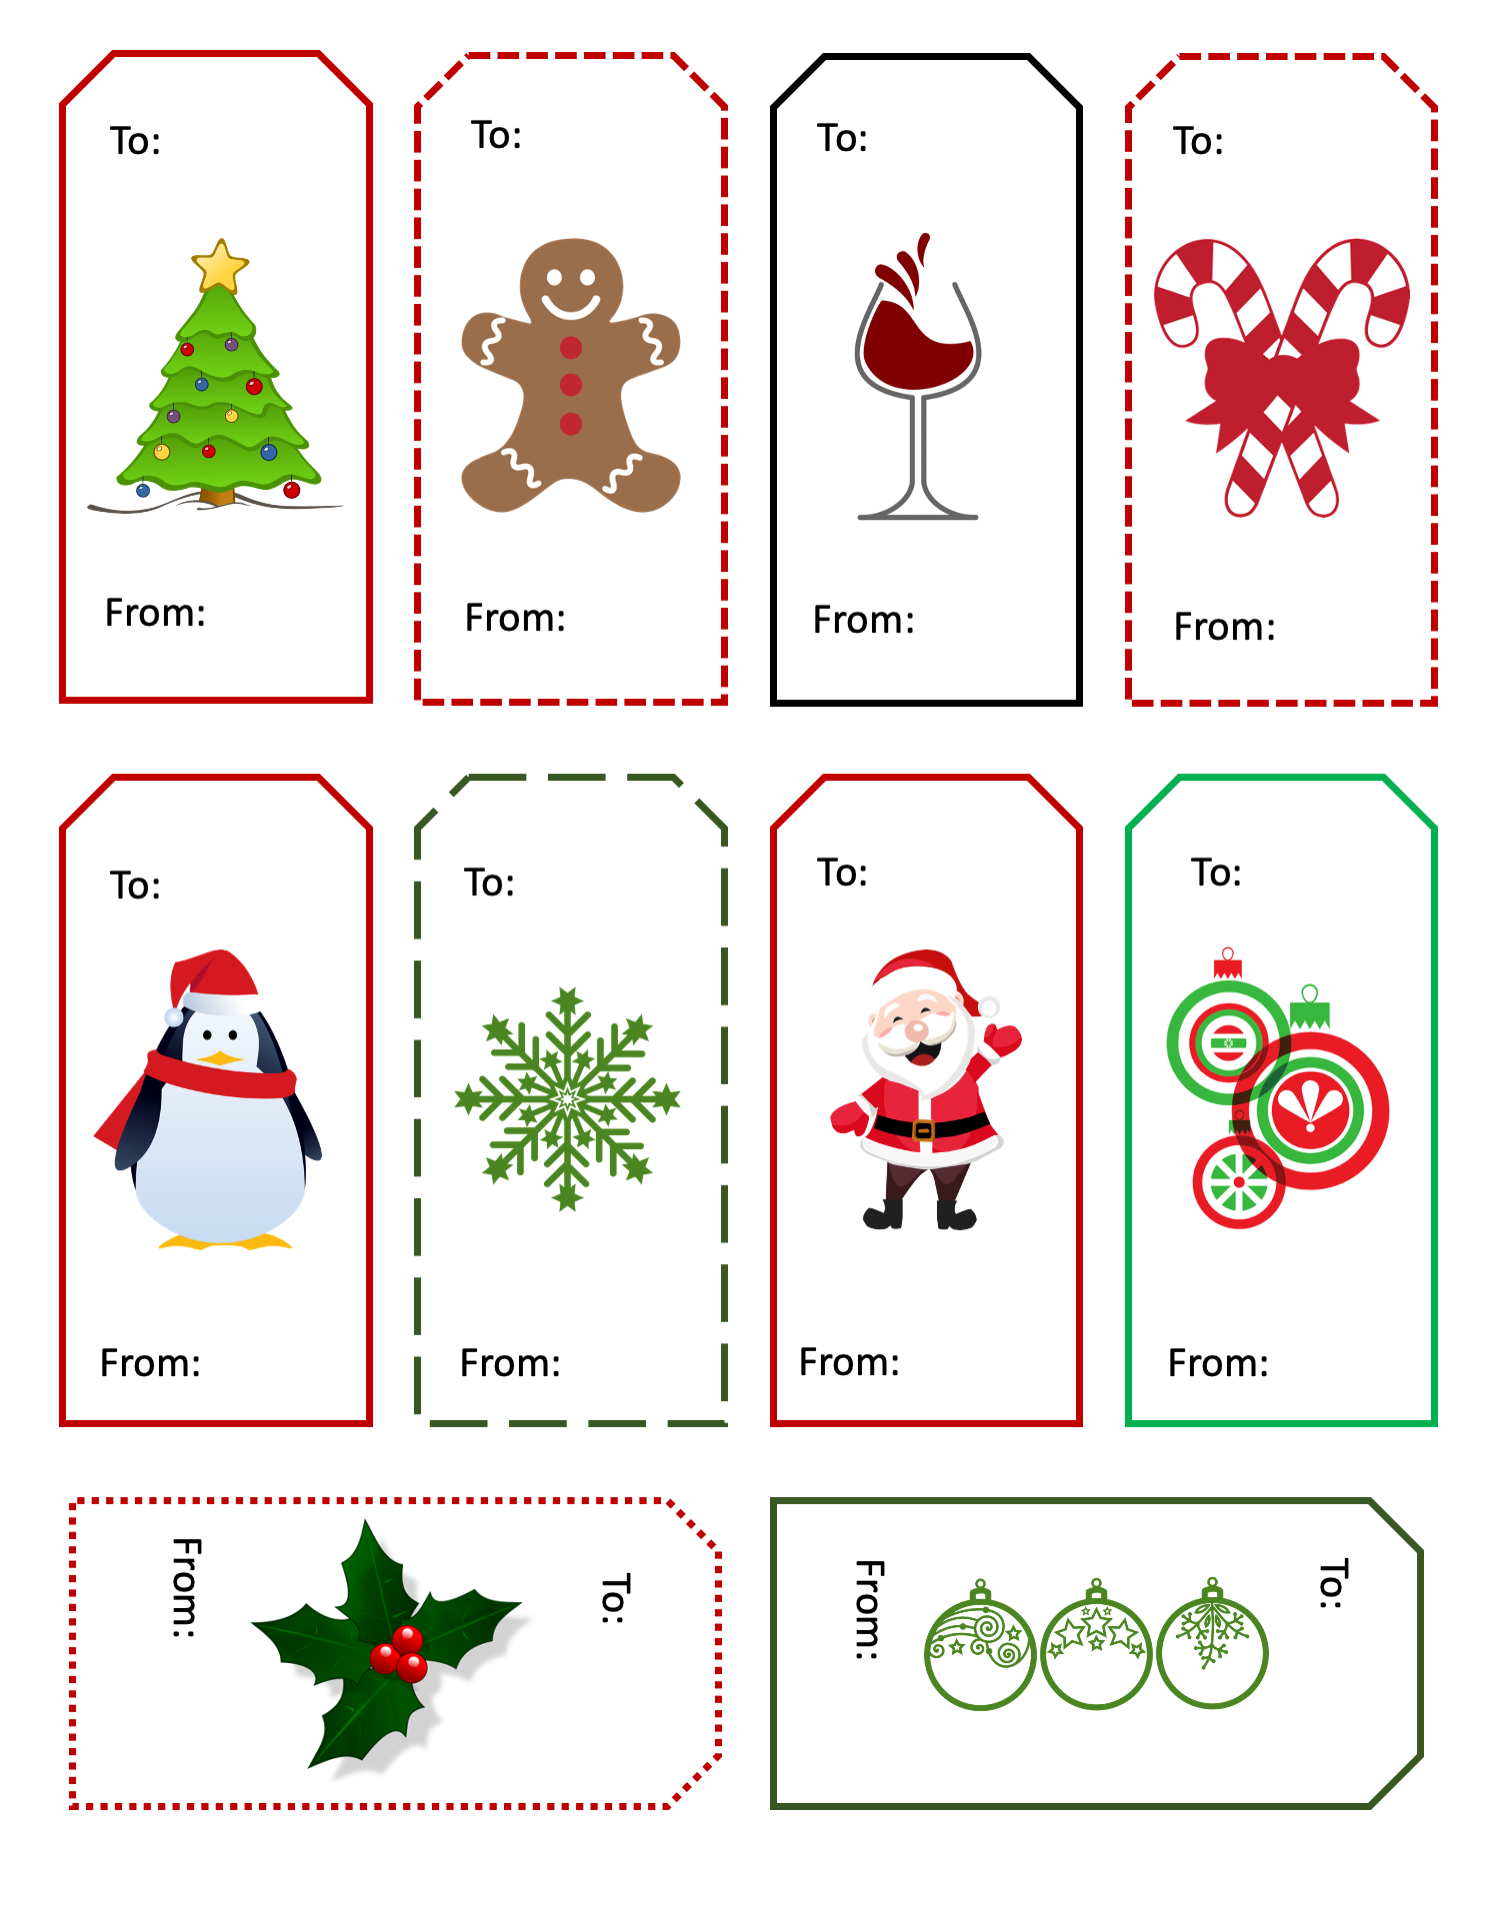 Christmas Gift Tags with PLR Rights